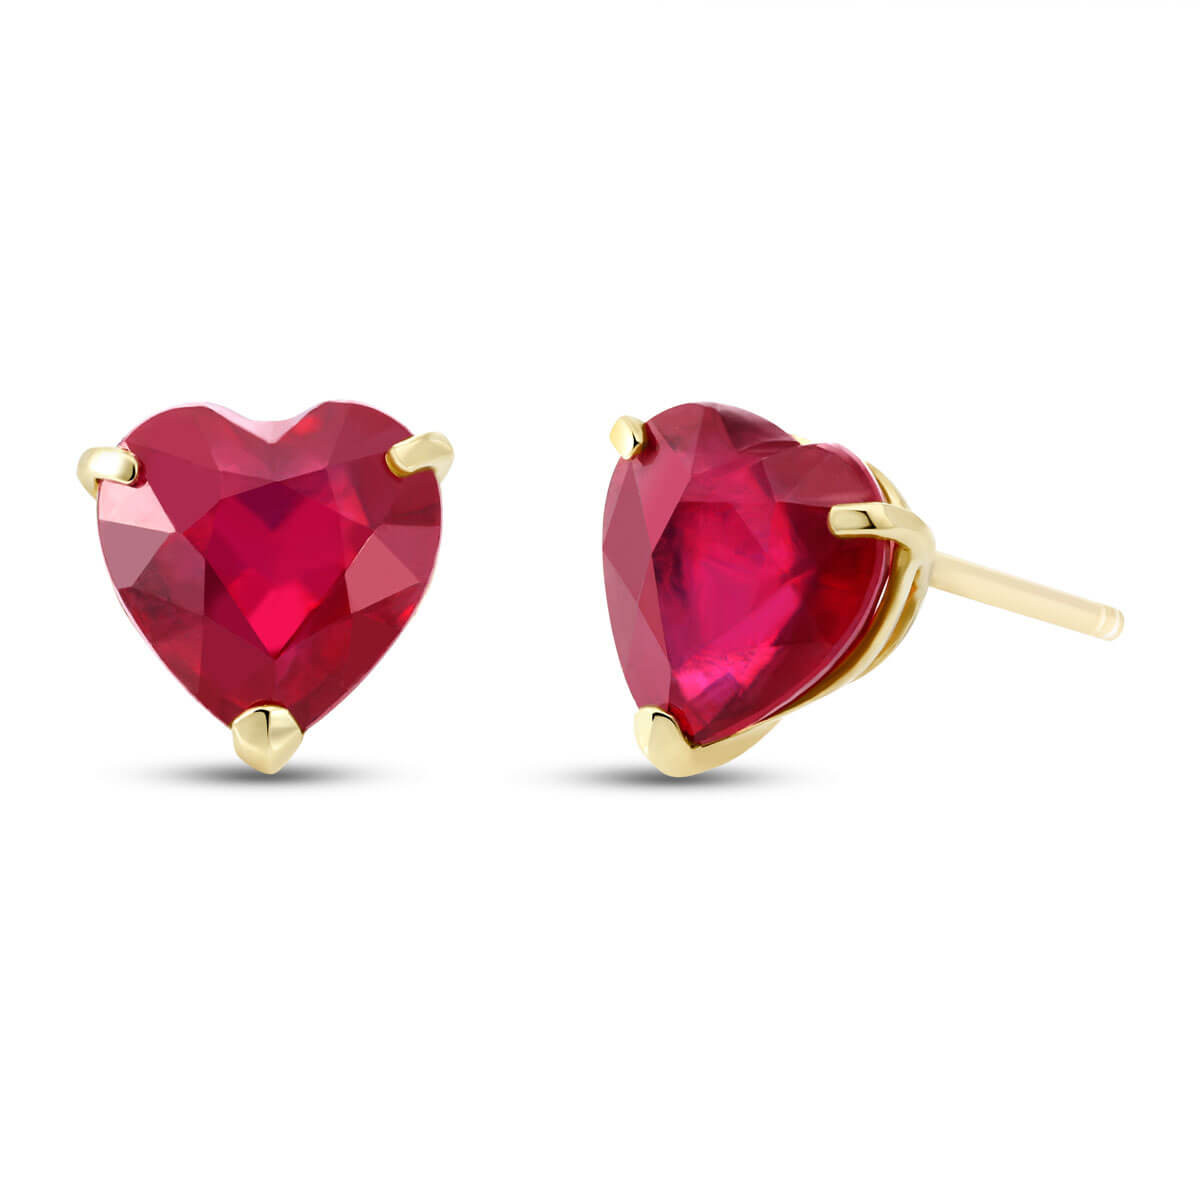 Ruby Stud Earrings 2.9 ctw in 9ct Gold